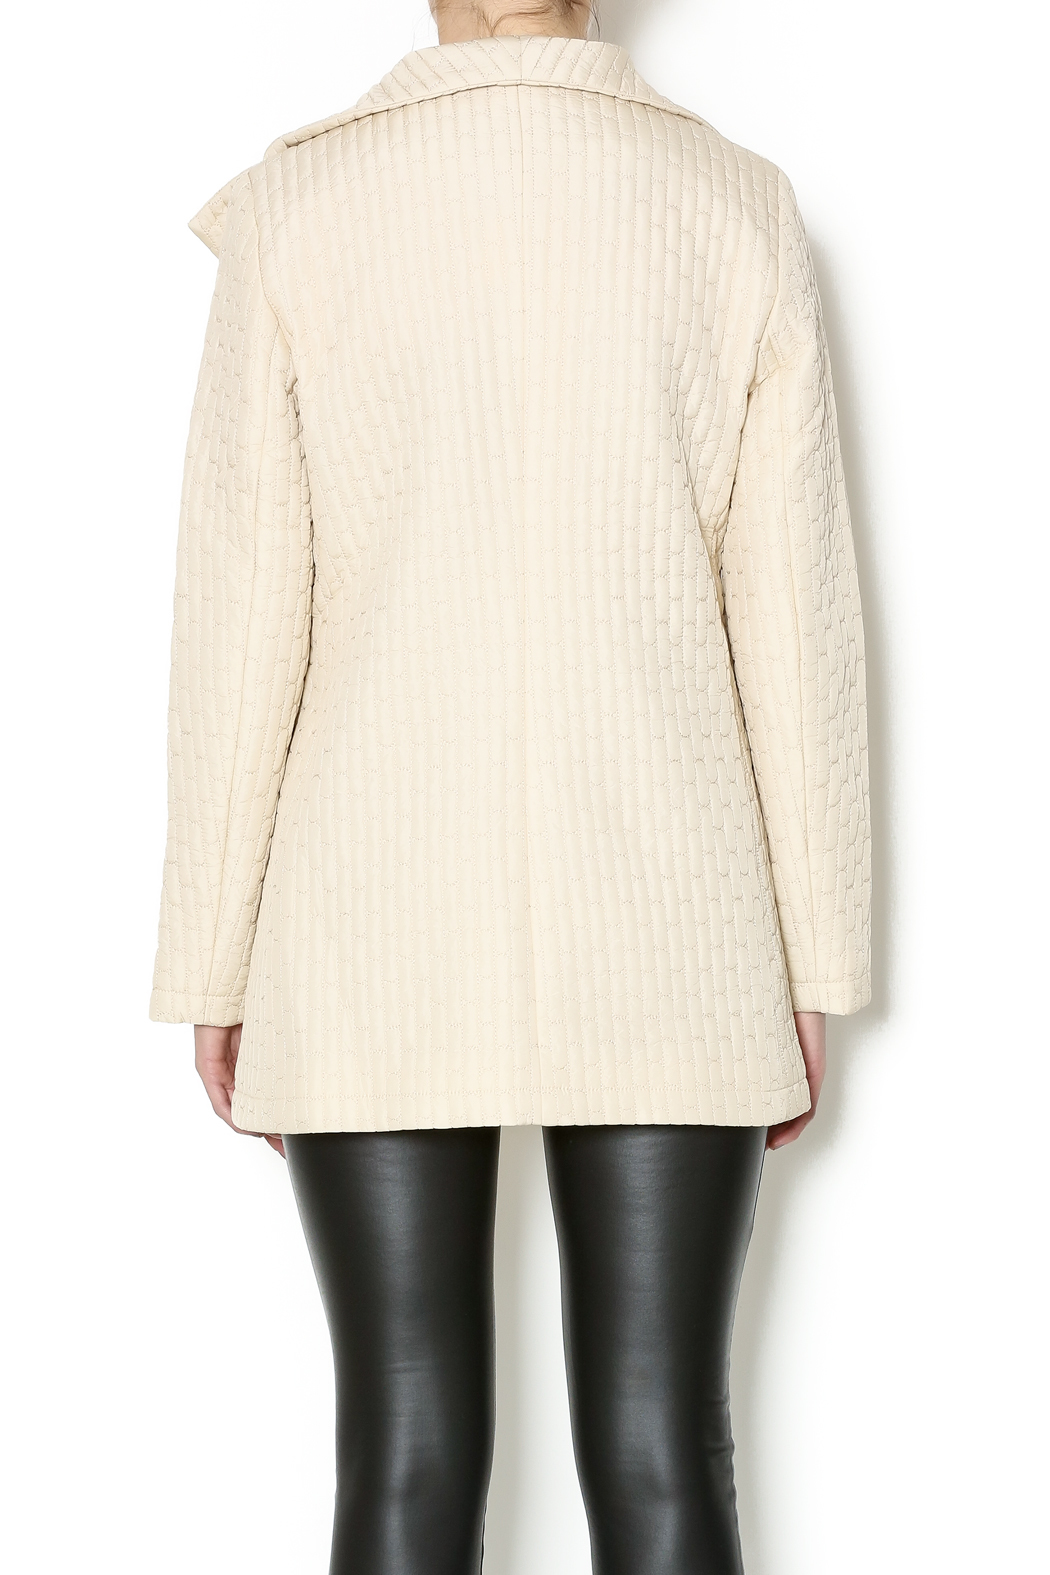 209 West Quilted Cream Jacket - Back Cropped Image